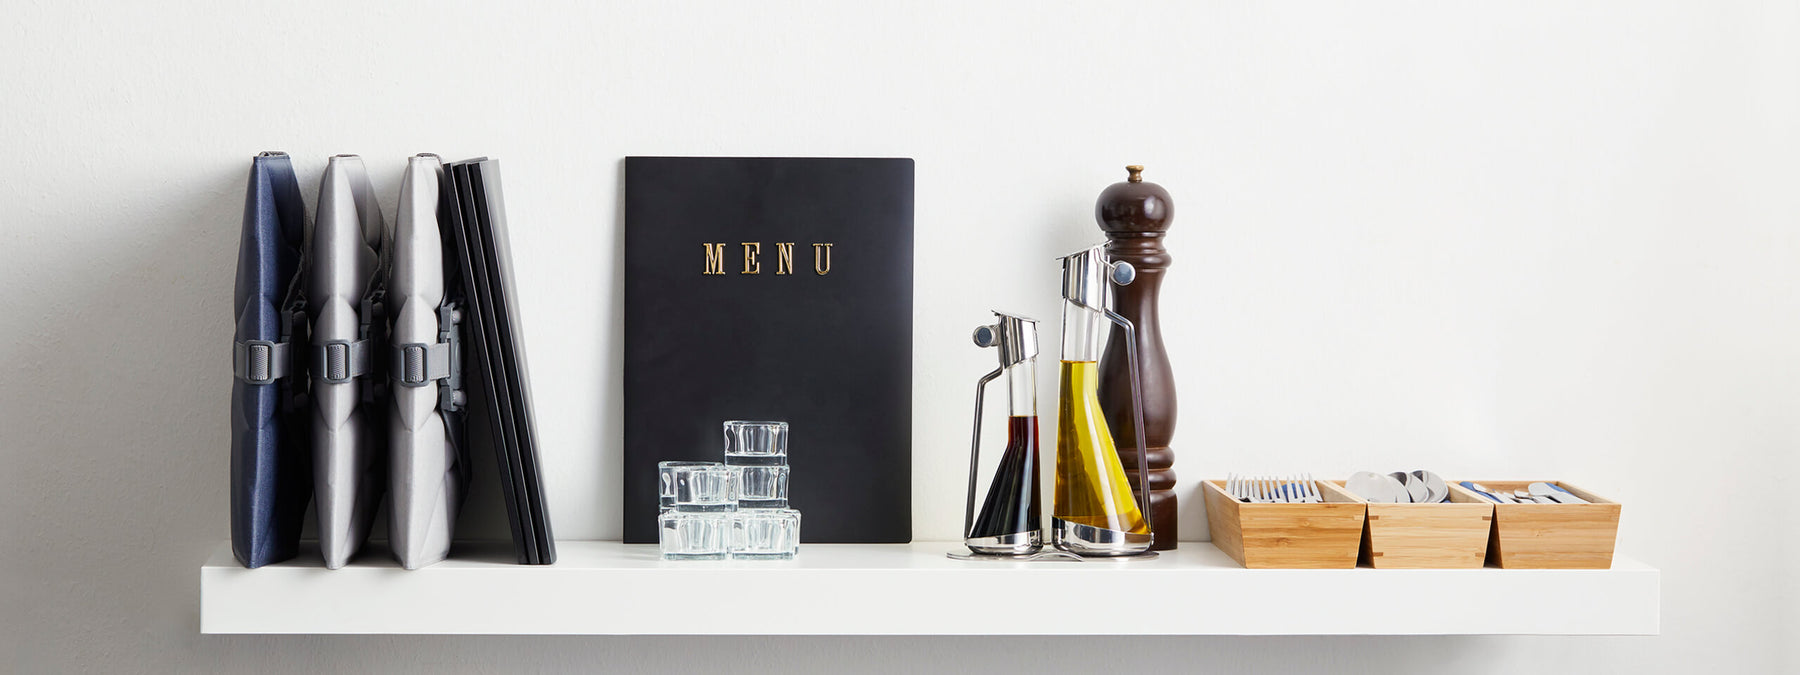 Bombol Foldable Pop-Up Booster on shelf with menu